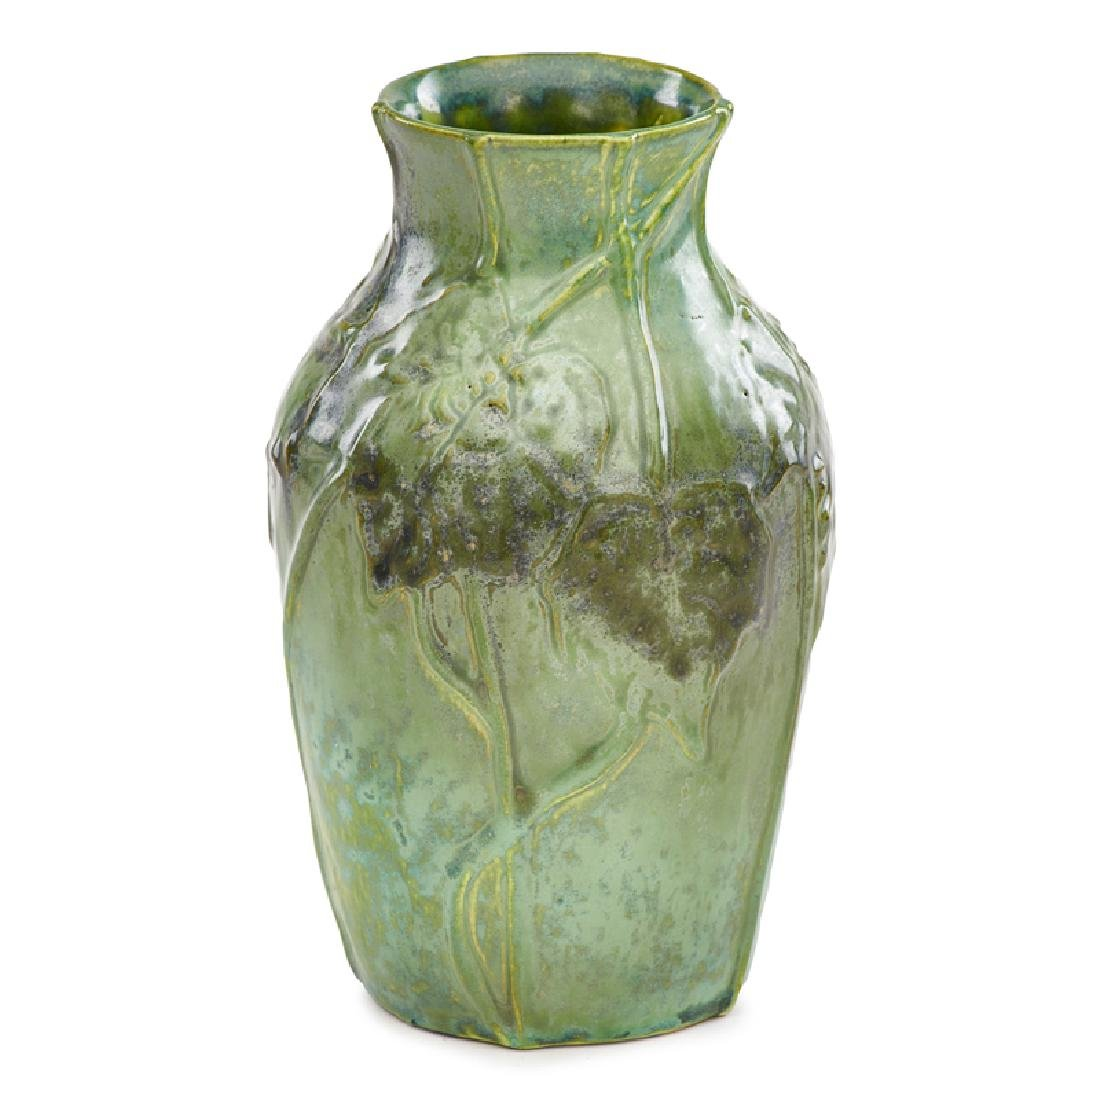 TIFFANY STUDIOS Small Favrile pottery vase